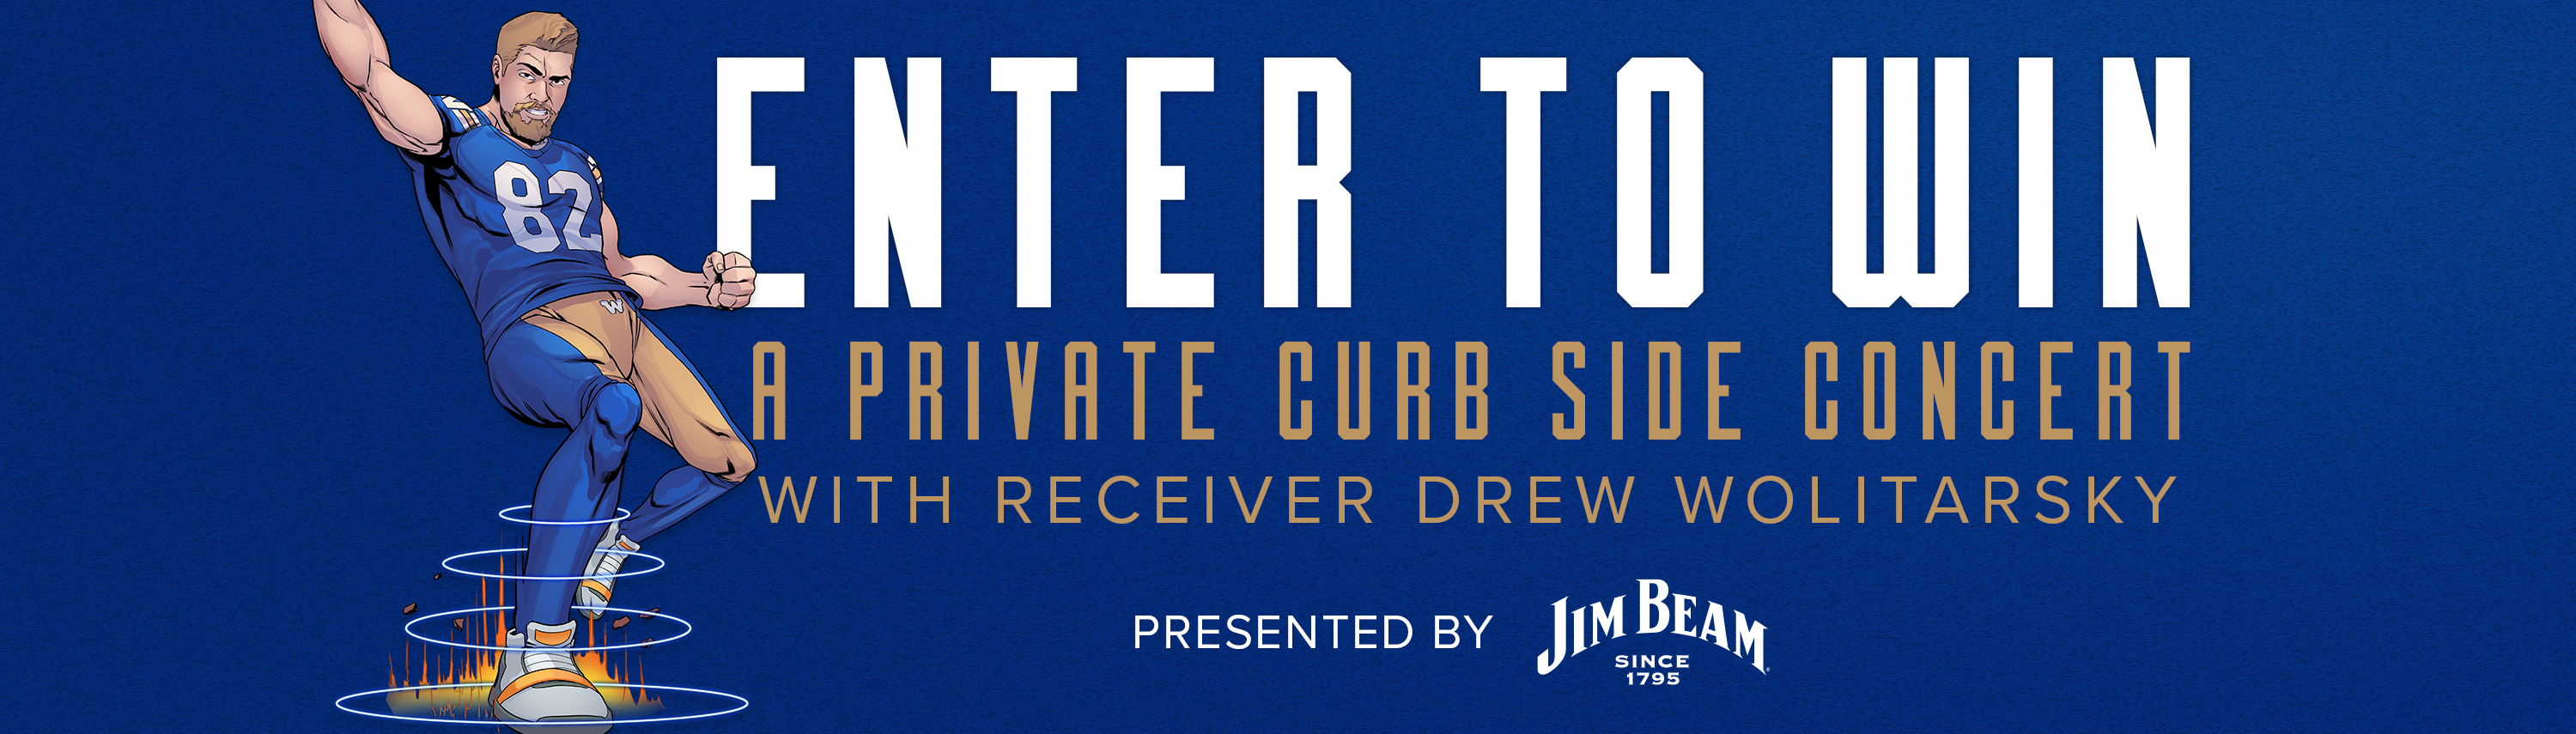 Private Curb Side Concert with Drew Wolitarsky presented by Jim Beam